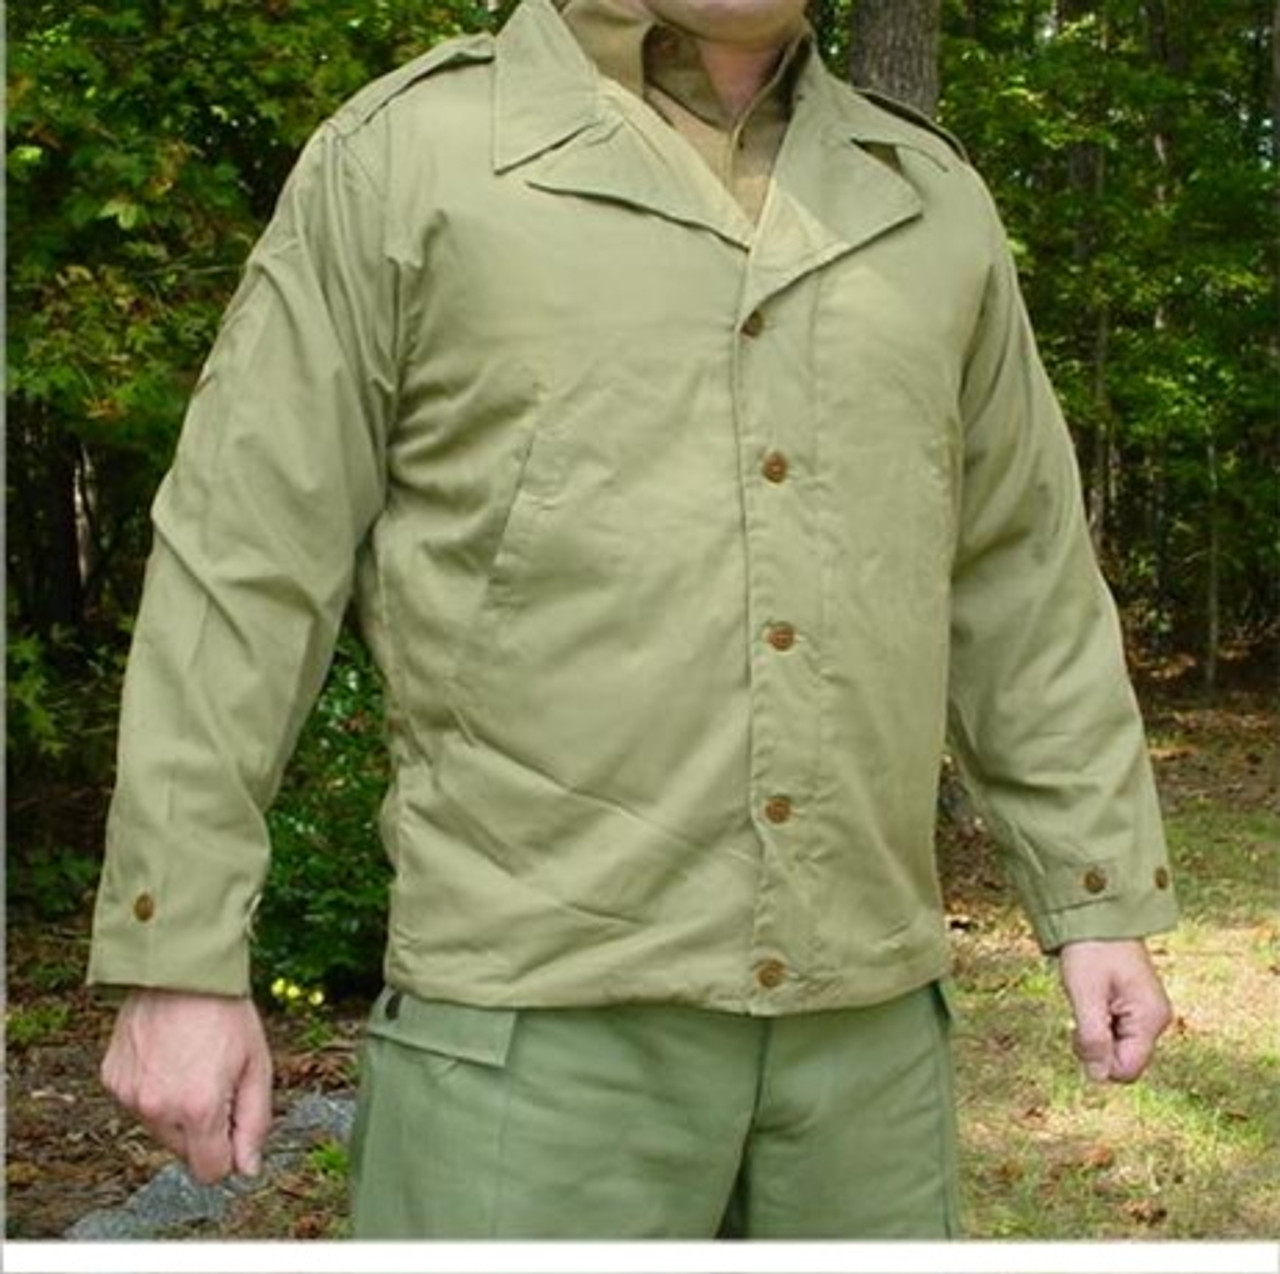 M41 Field Jacket from Hessen Antique